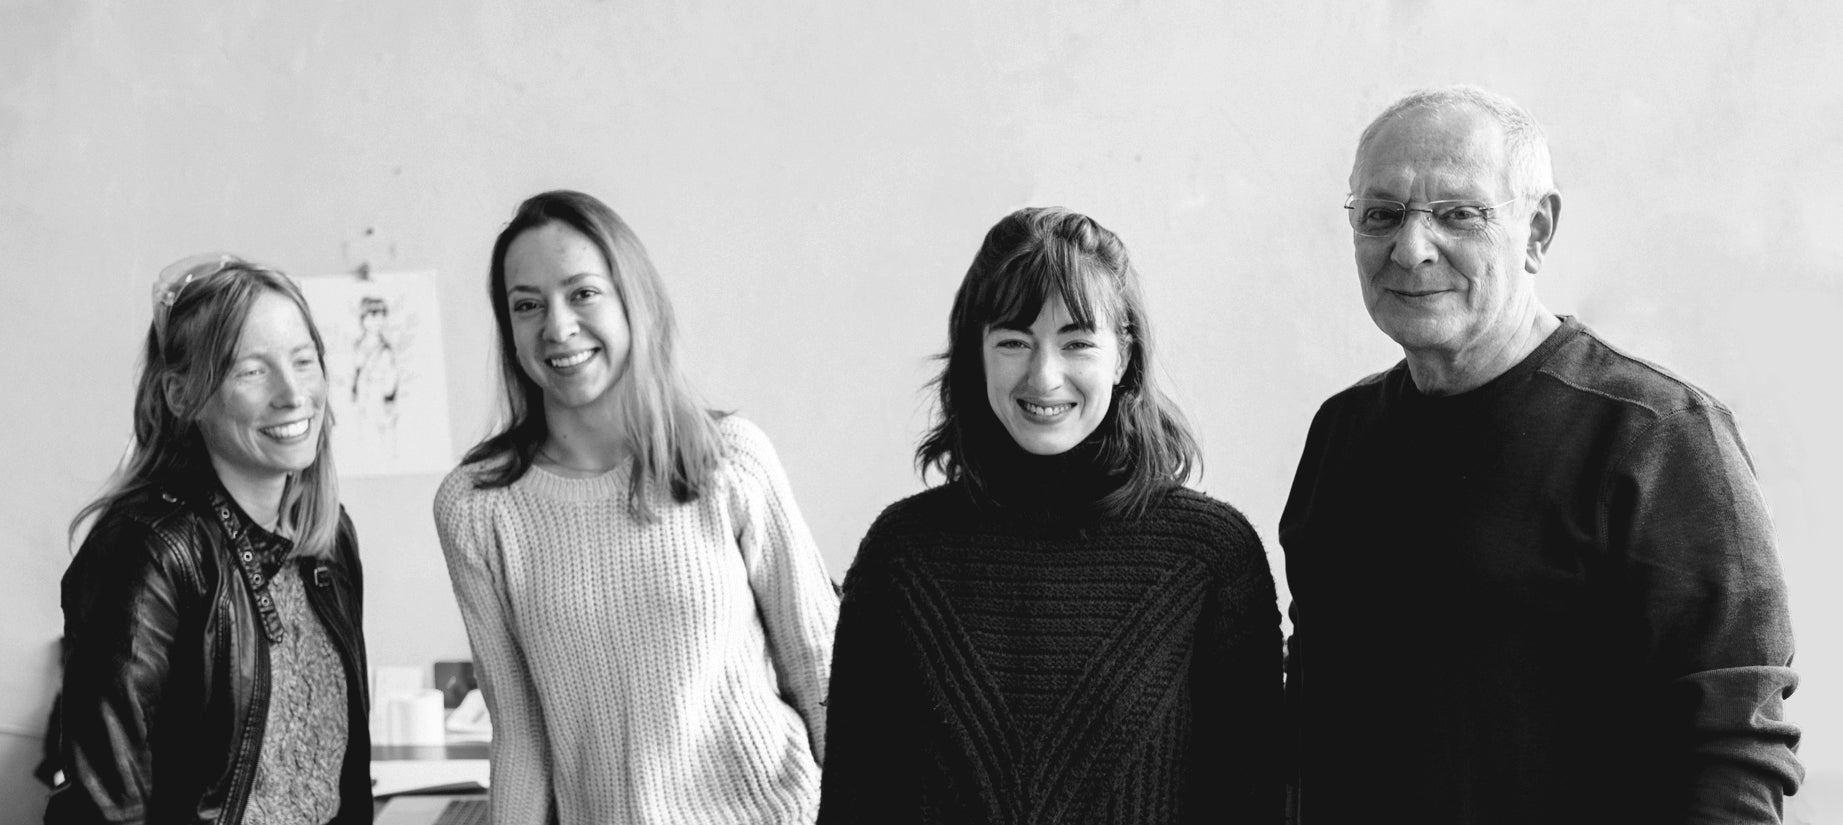 The Knobbly Studio team